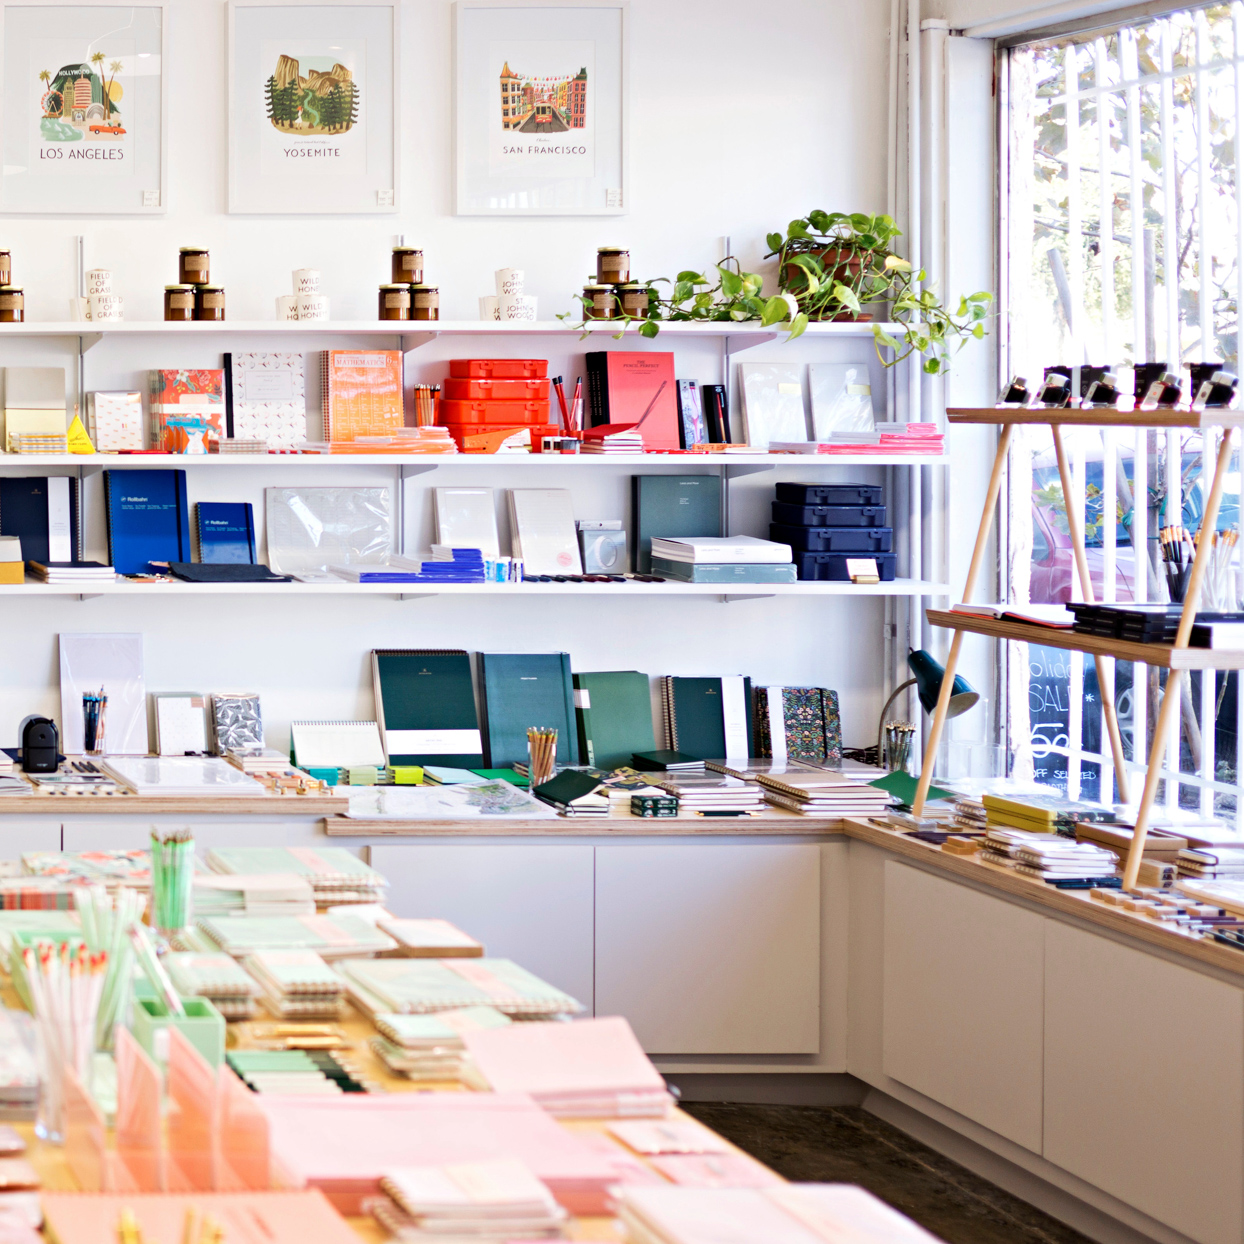 Shorthand stationery shop with colorful paper products